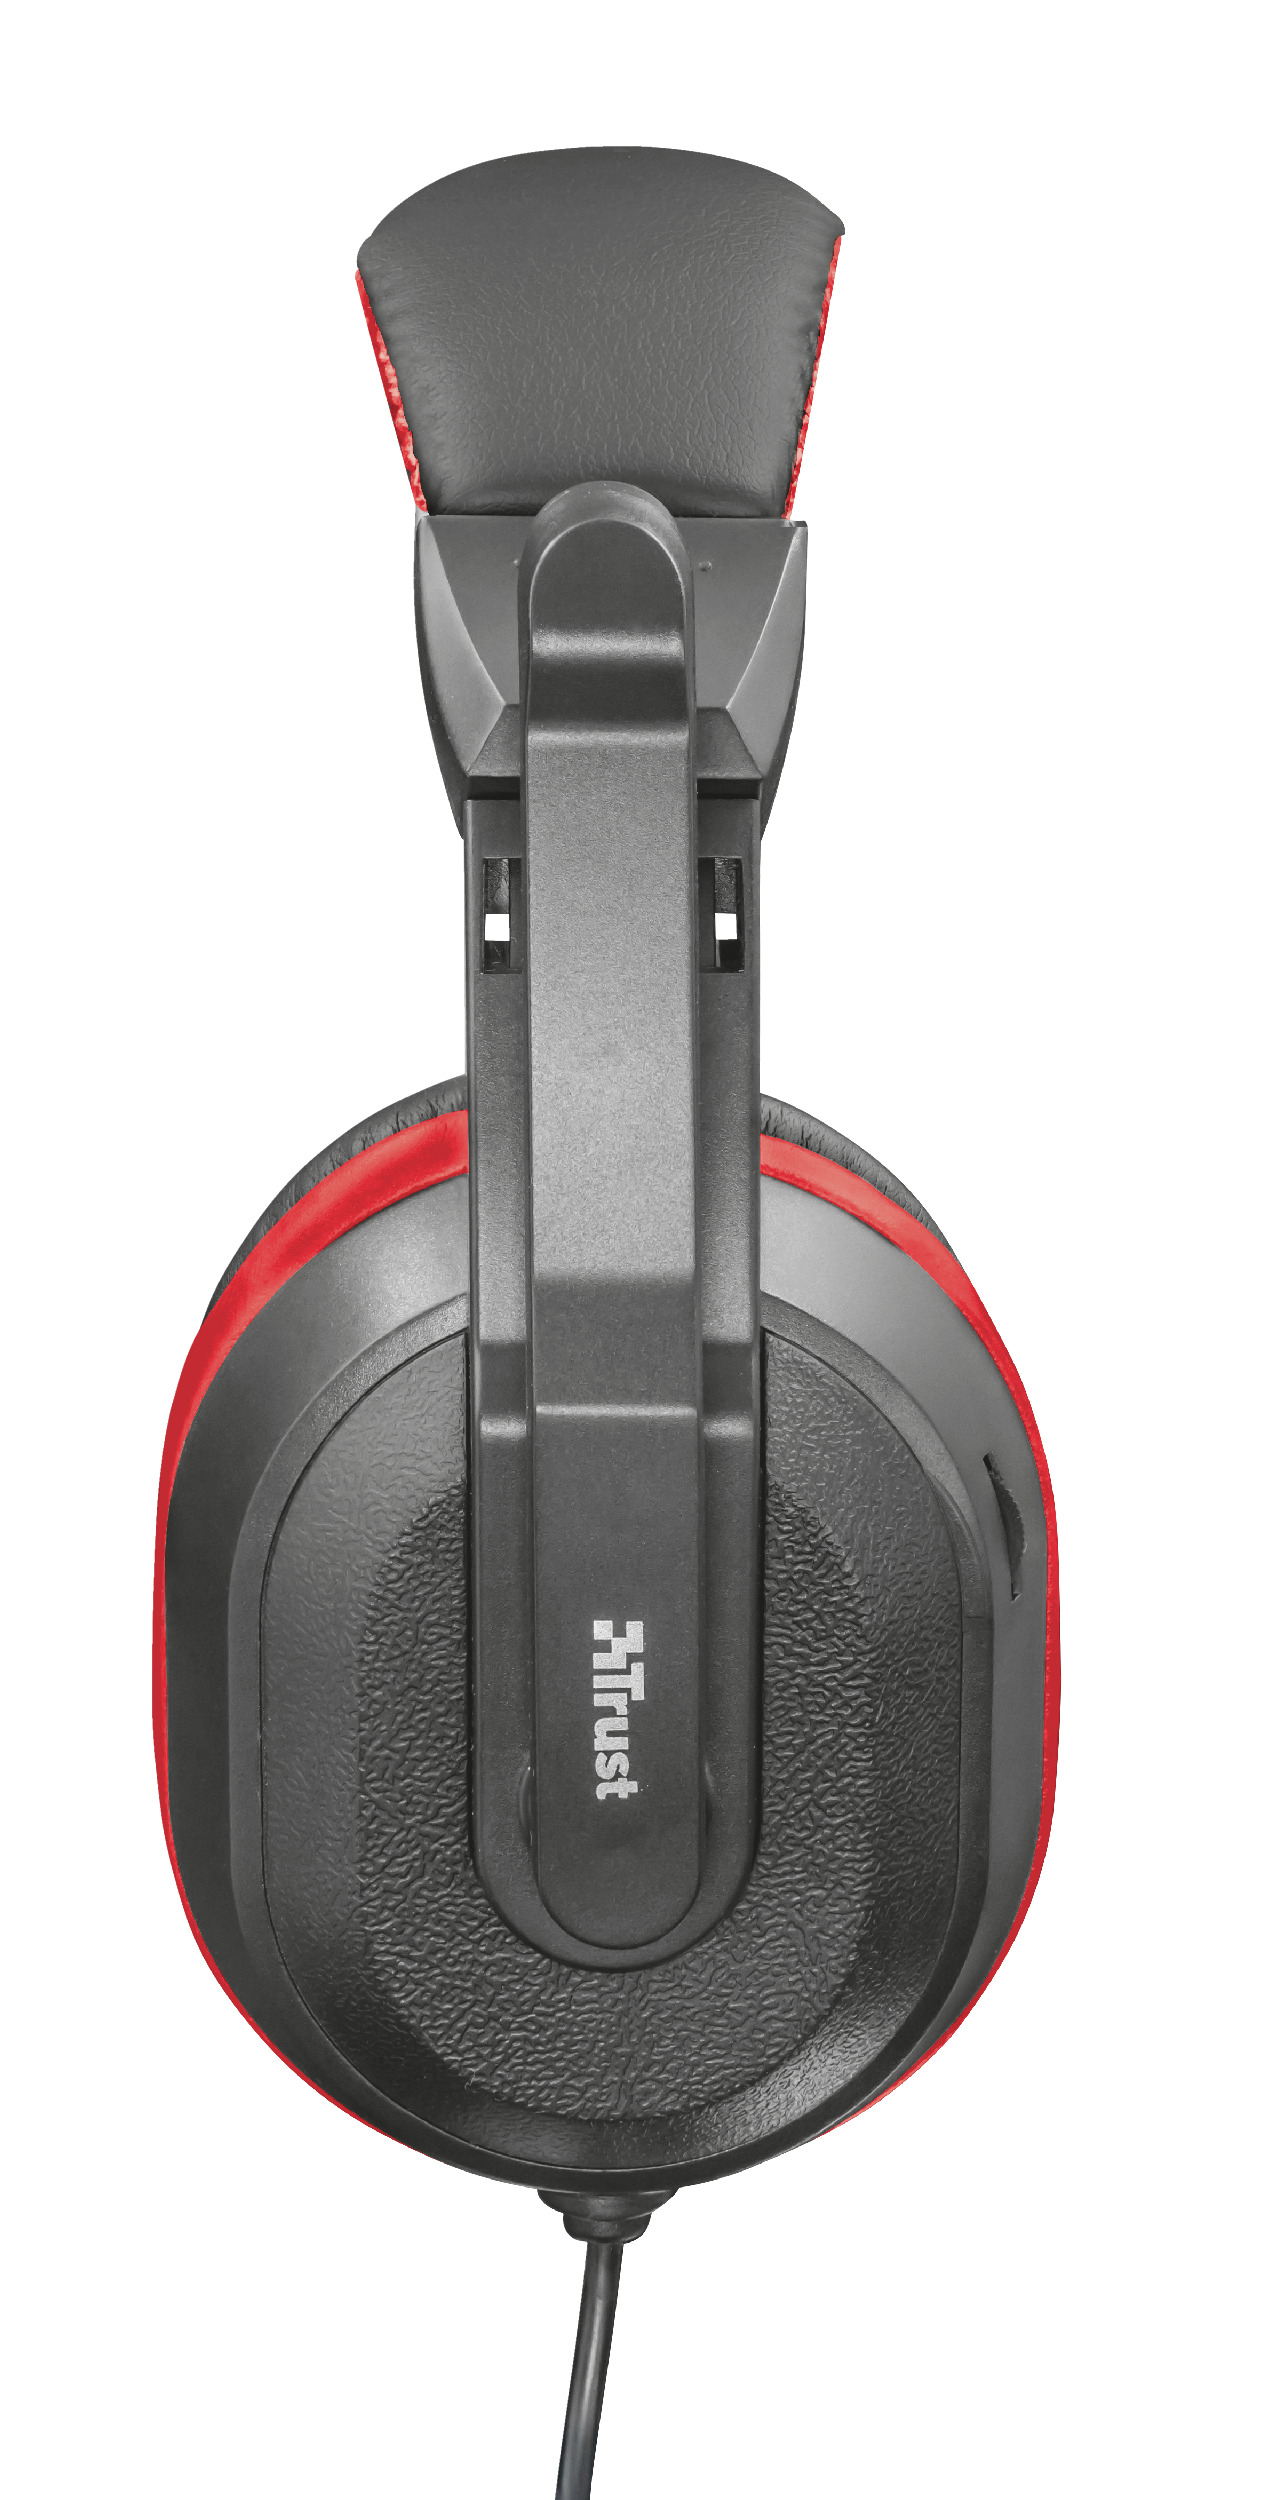 TRUST Ziva Comfortable Gaming Headset with Microphone 21953 3